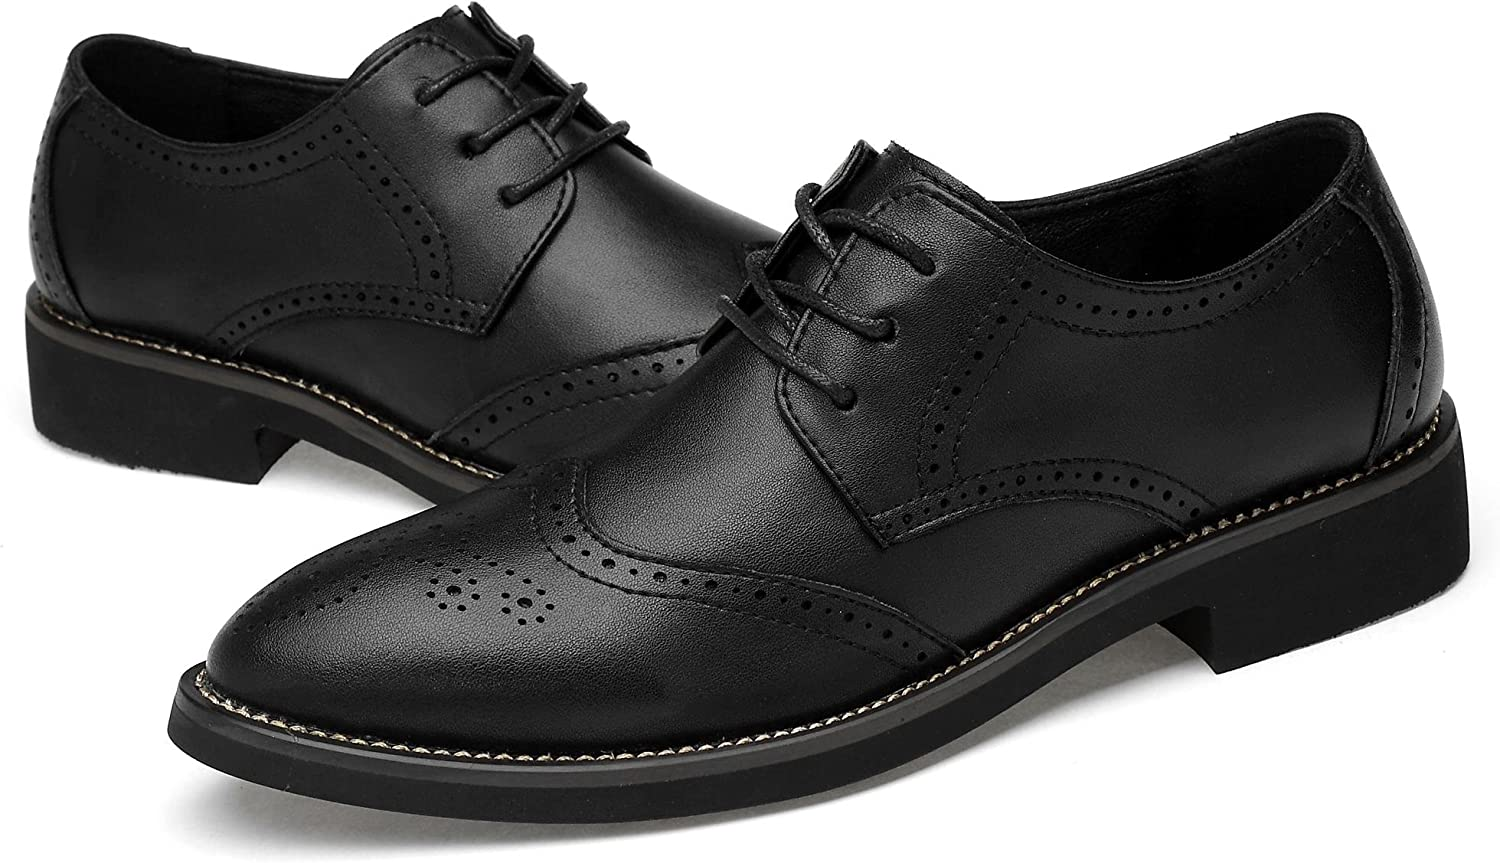 KEEPwhiteE Men's Modern Leather Bullock shoes Lace-up Oxfords with Hollow Carved Design